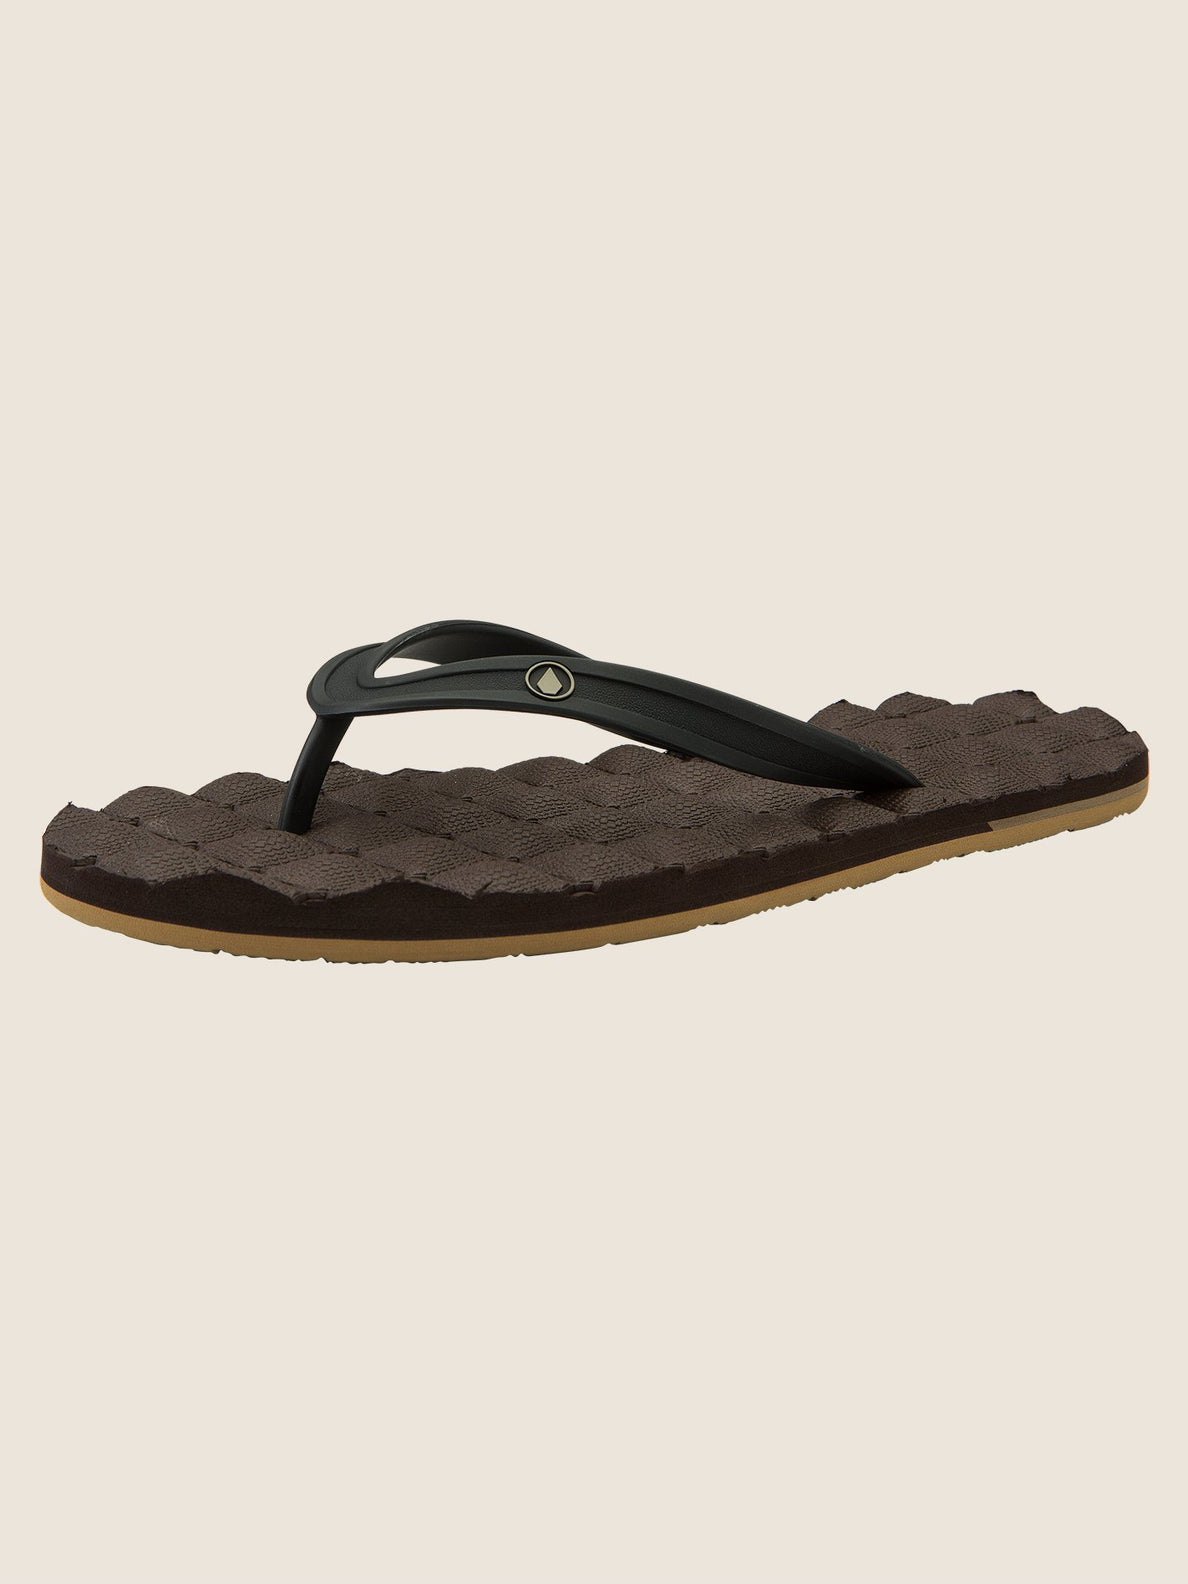 Recliner Rubber 2 Sandals In Brown Combo, Back View